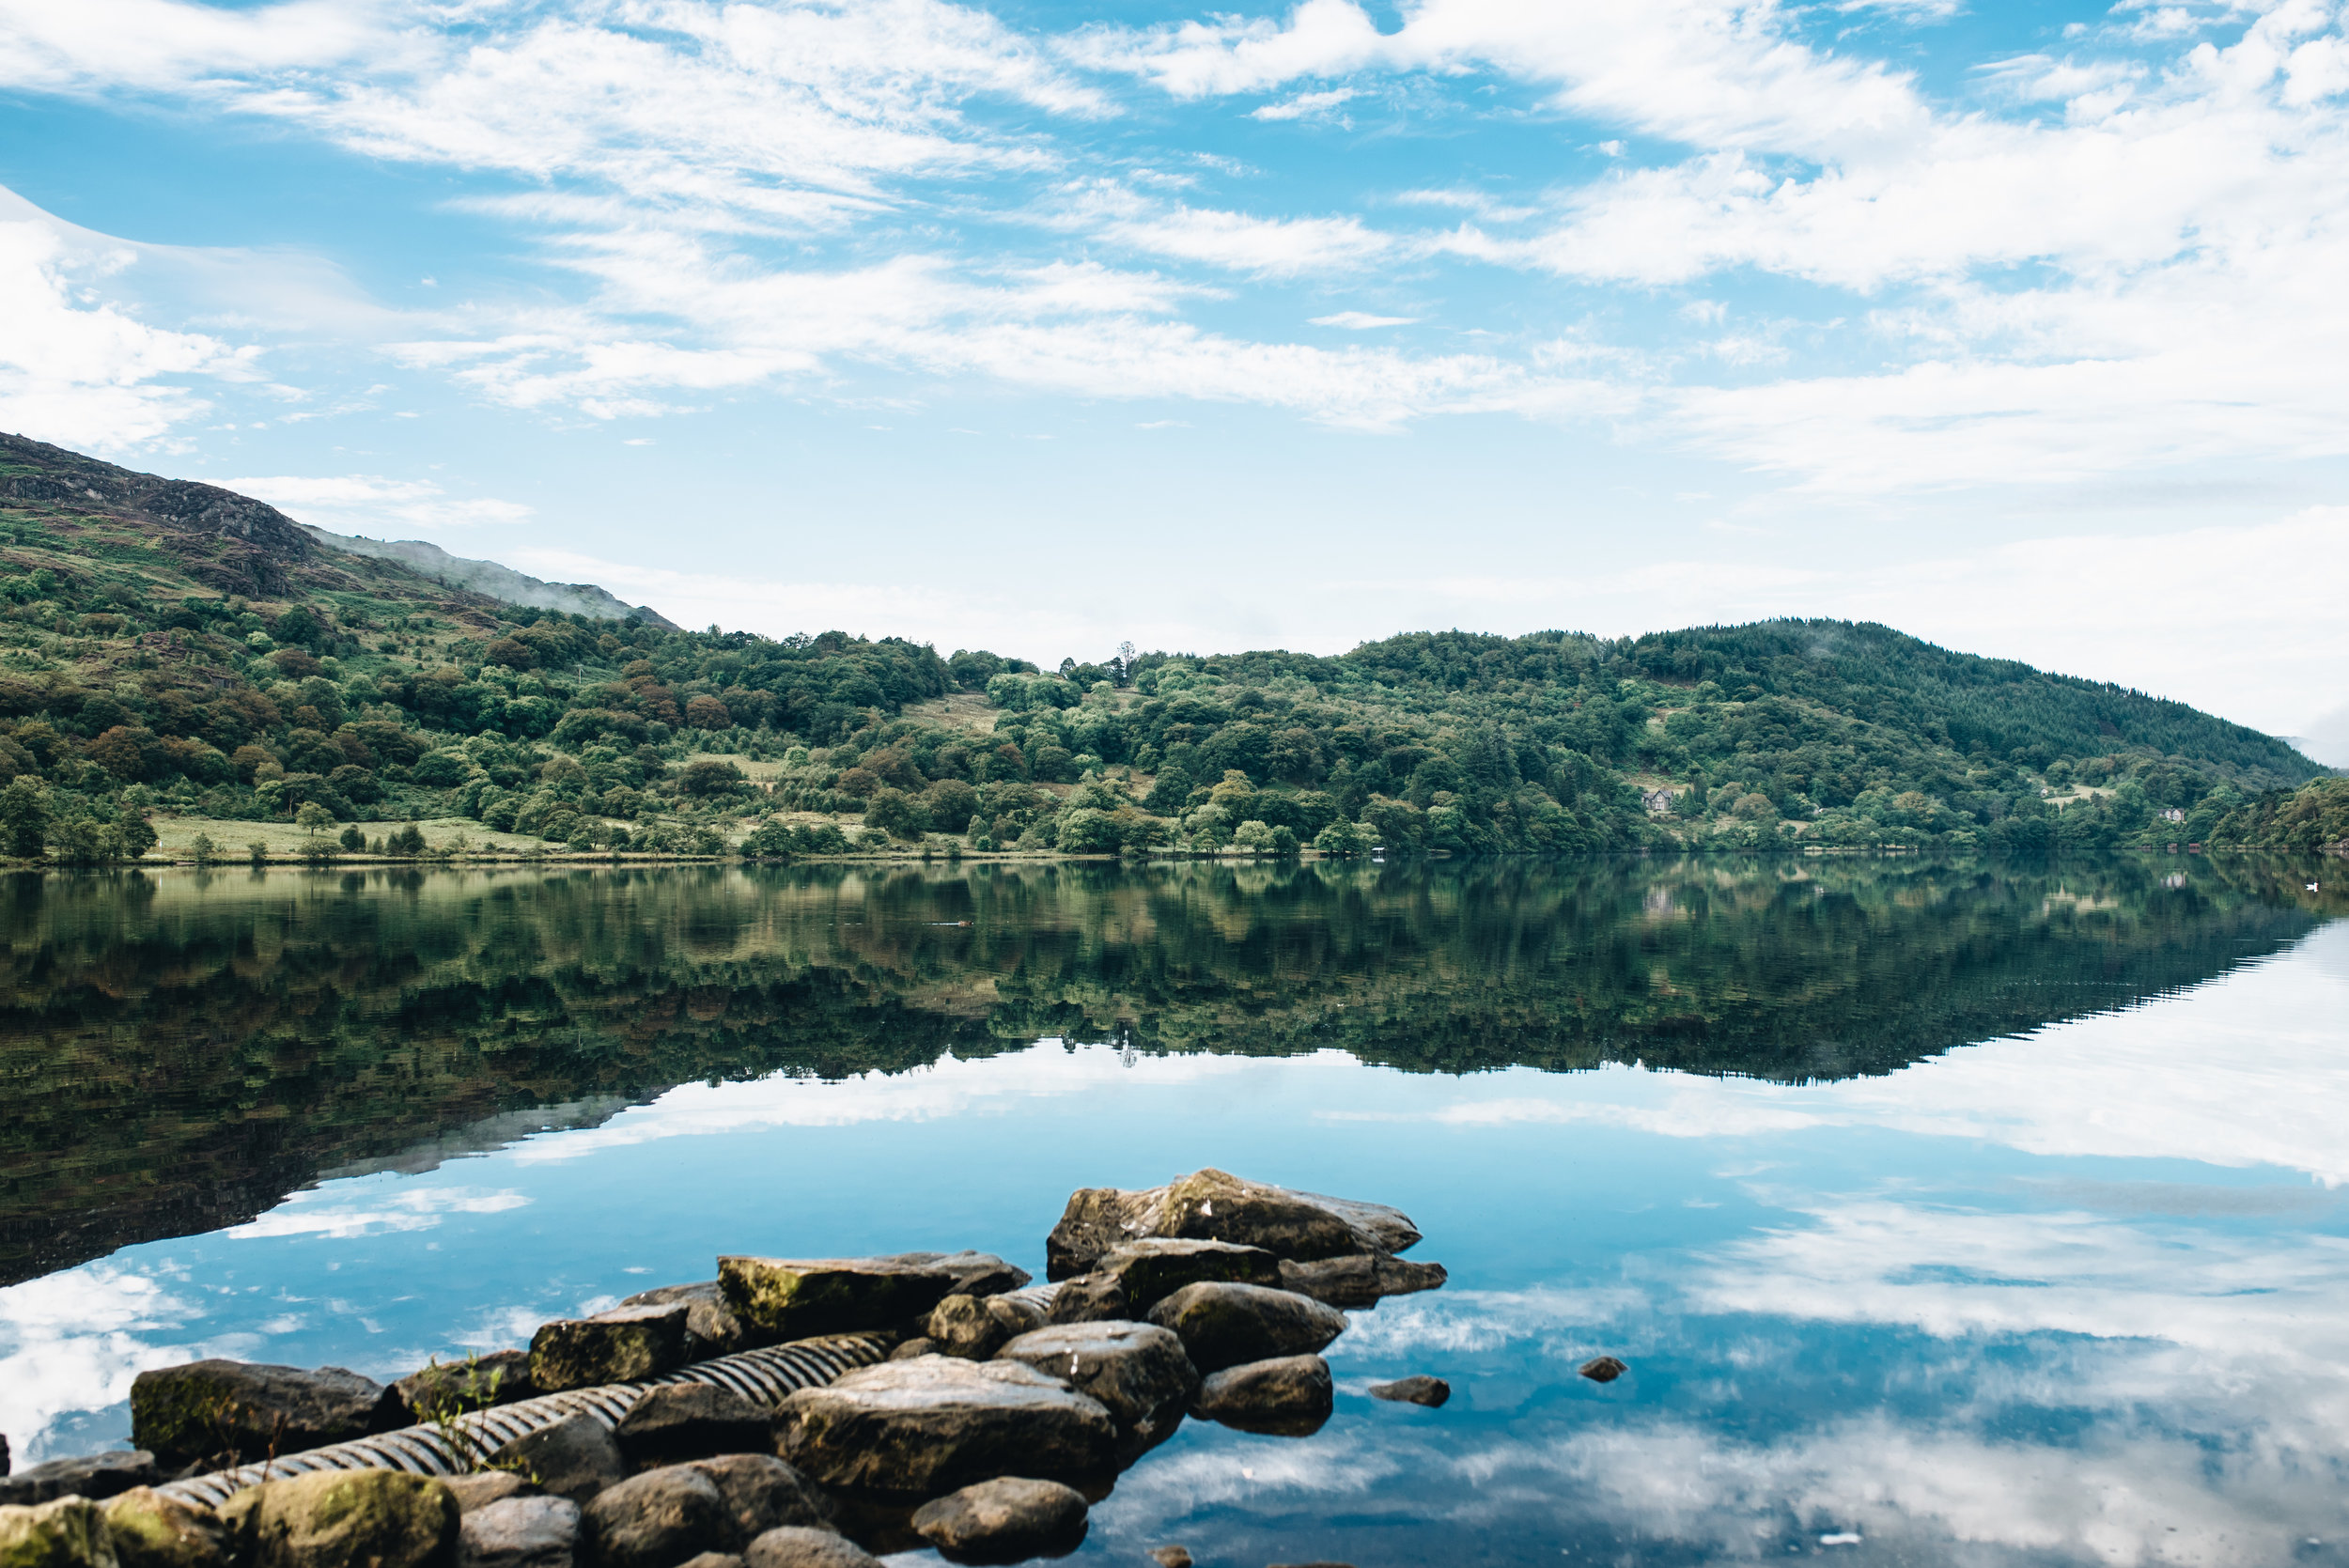 A holiday in North Wales - Llyn Gwynant